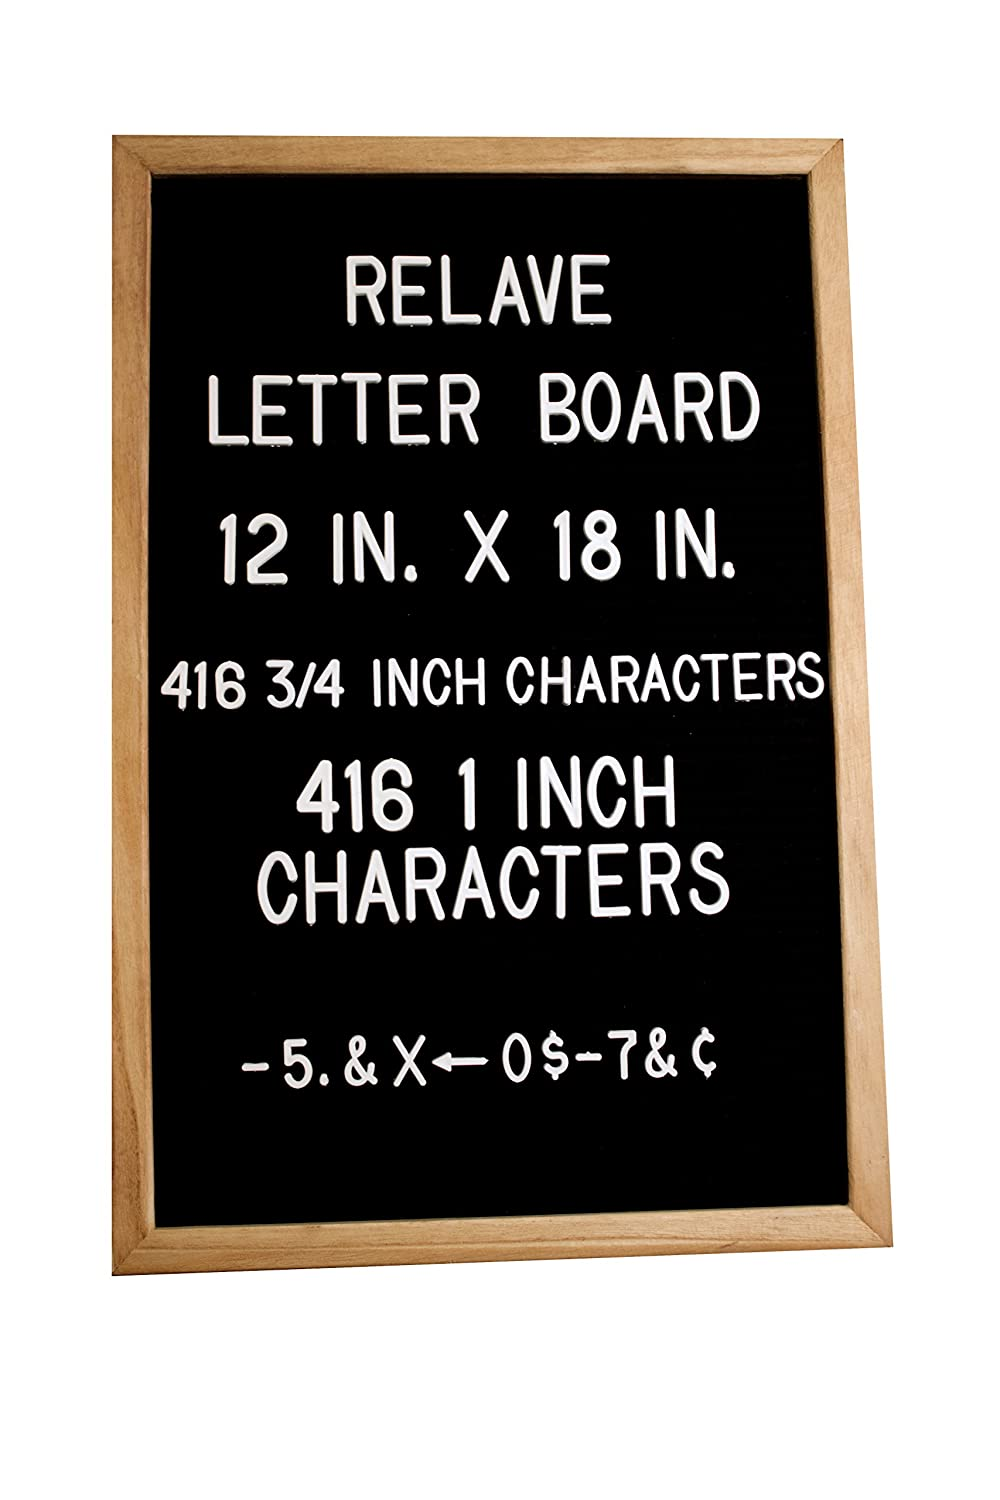 Changeable Black Felt Letter Board by Relave- 12 x 18, Natural Oak Wooden Frame, 416 3/4 and 416 1 White Letters, Great For Any Occasion